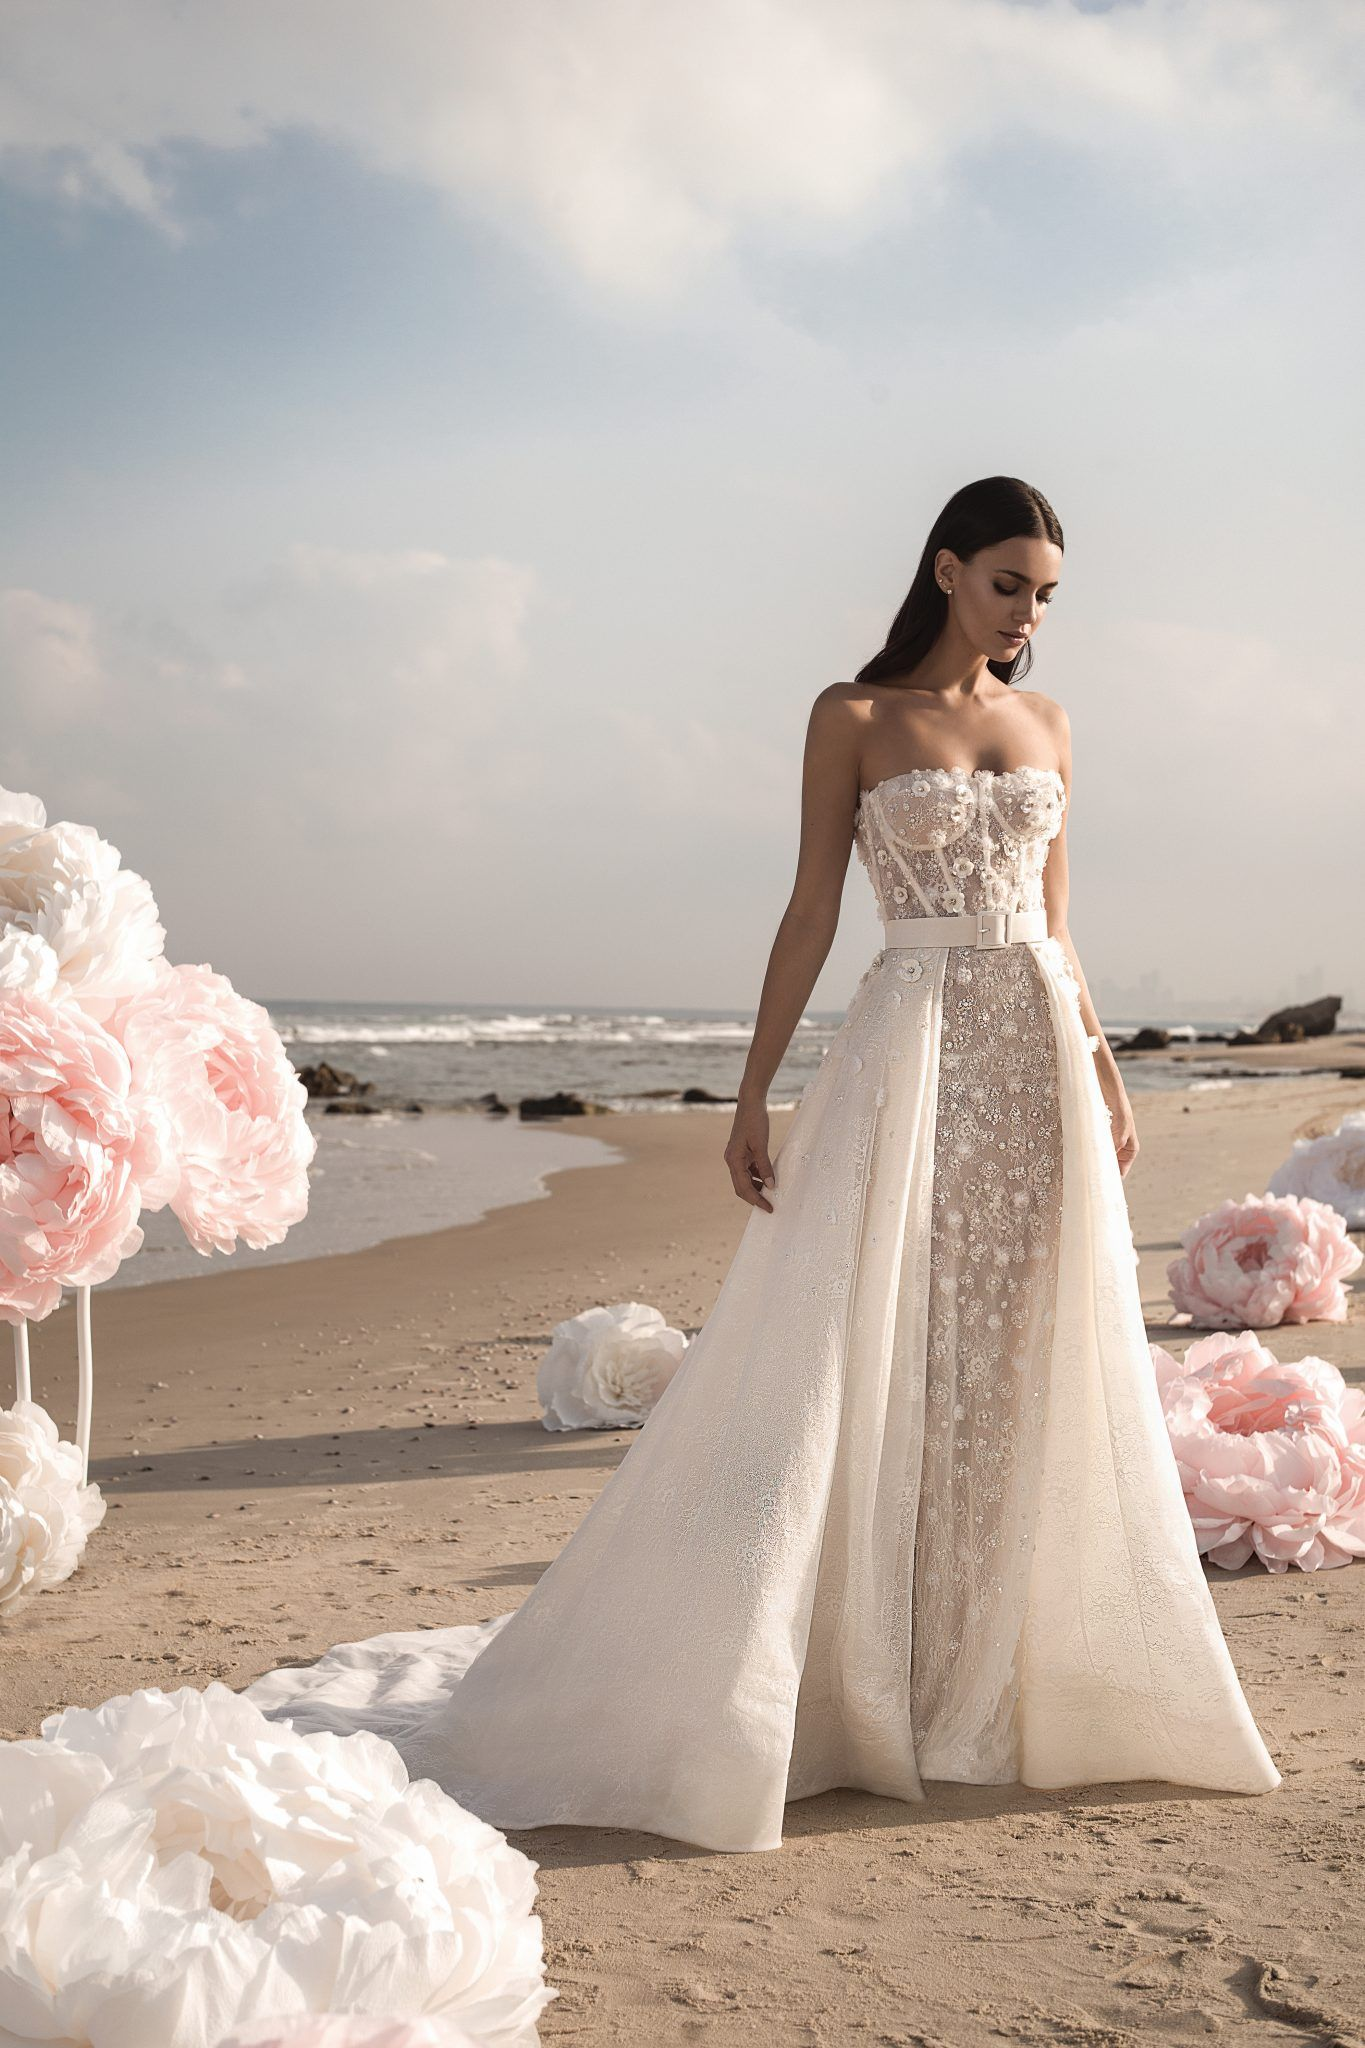 Lee Grebenau Gigi Wedding Gown Strapless Corseted Mermaid Gown With 3d Florals And A Leather Wedding Dresses Wedding Dress Organza Wedding Dresses Strapless [ 2048 x 1365 Pixel ]